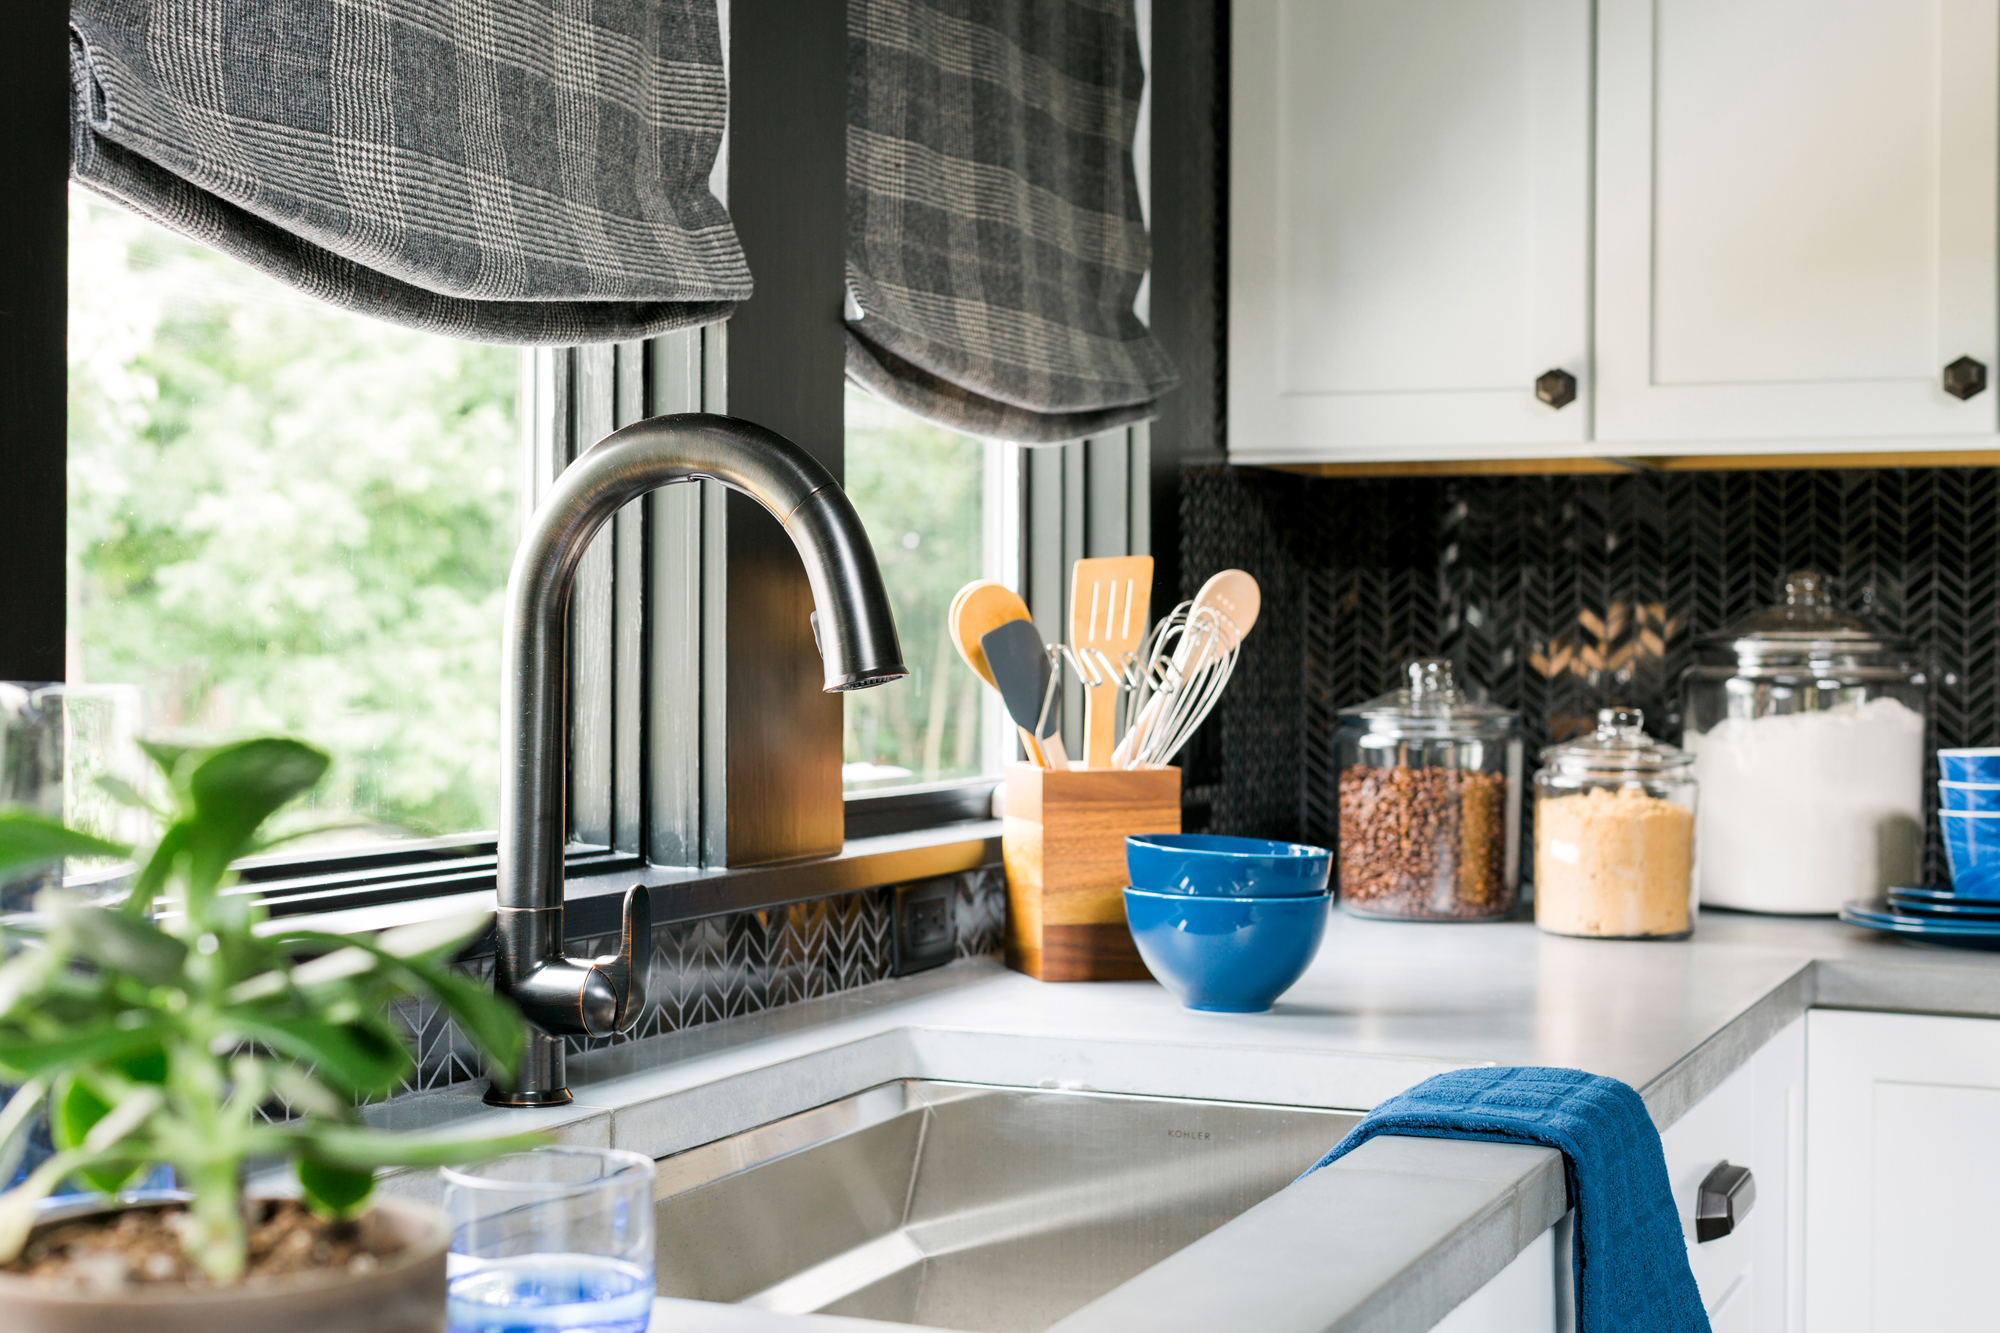 Sensate® faucet   Prolific® kitchen sink     A touchless faucet and stainless steel sink with custom, stackable accessories give this small kitchen an innovative edge and extra efficiency when it comes to tackling meal prep and cleanup.